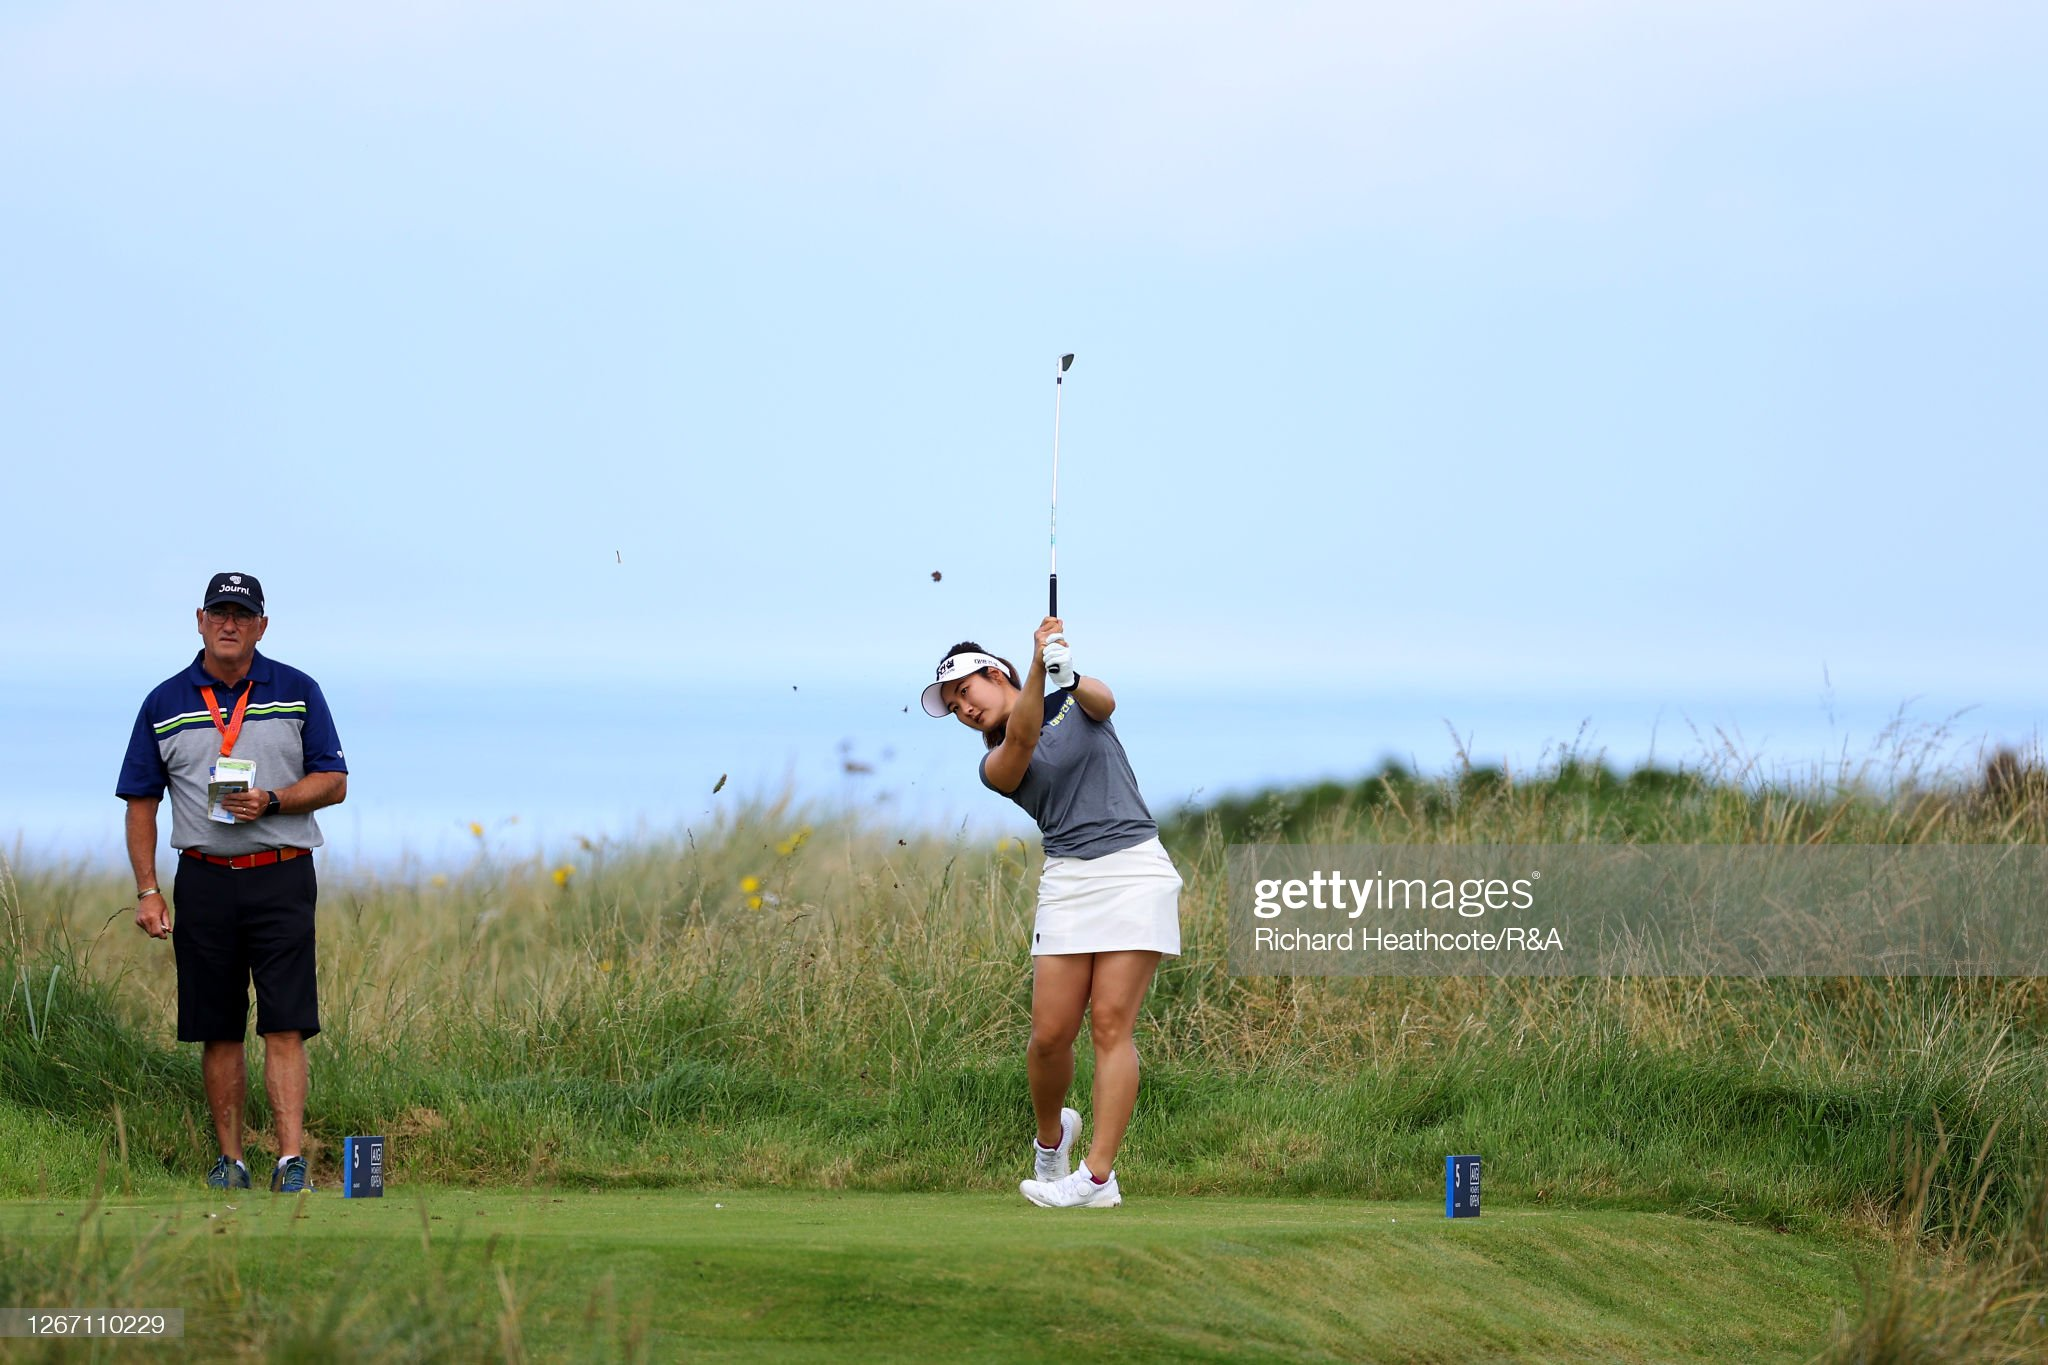 https://media.gettyimages.com/photos/suoh-of-australia-plays-a-tee-shot-during-a-practice-round-ahead-of-picture-id1267110229?s=2048x2048